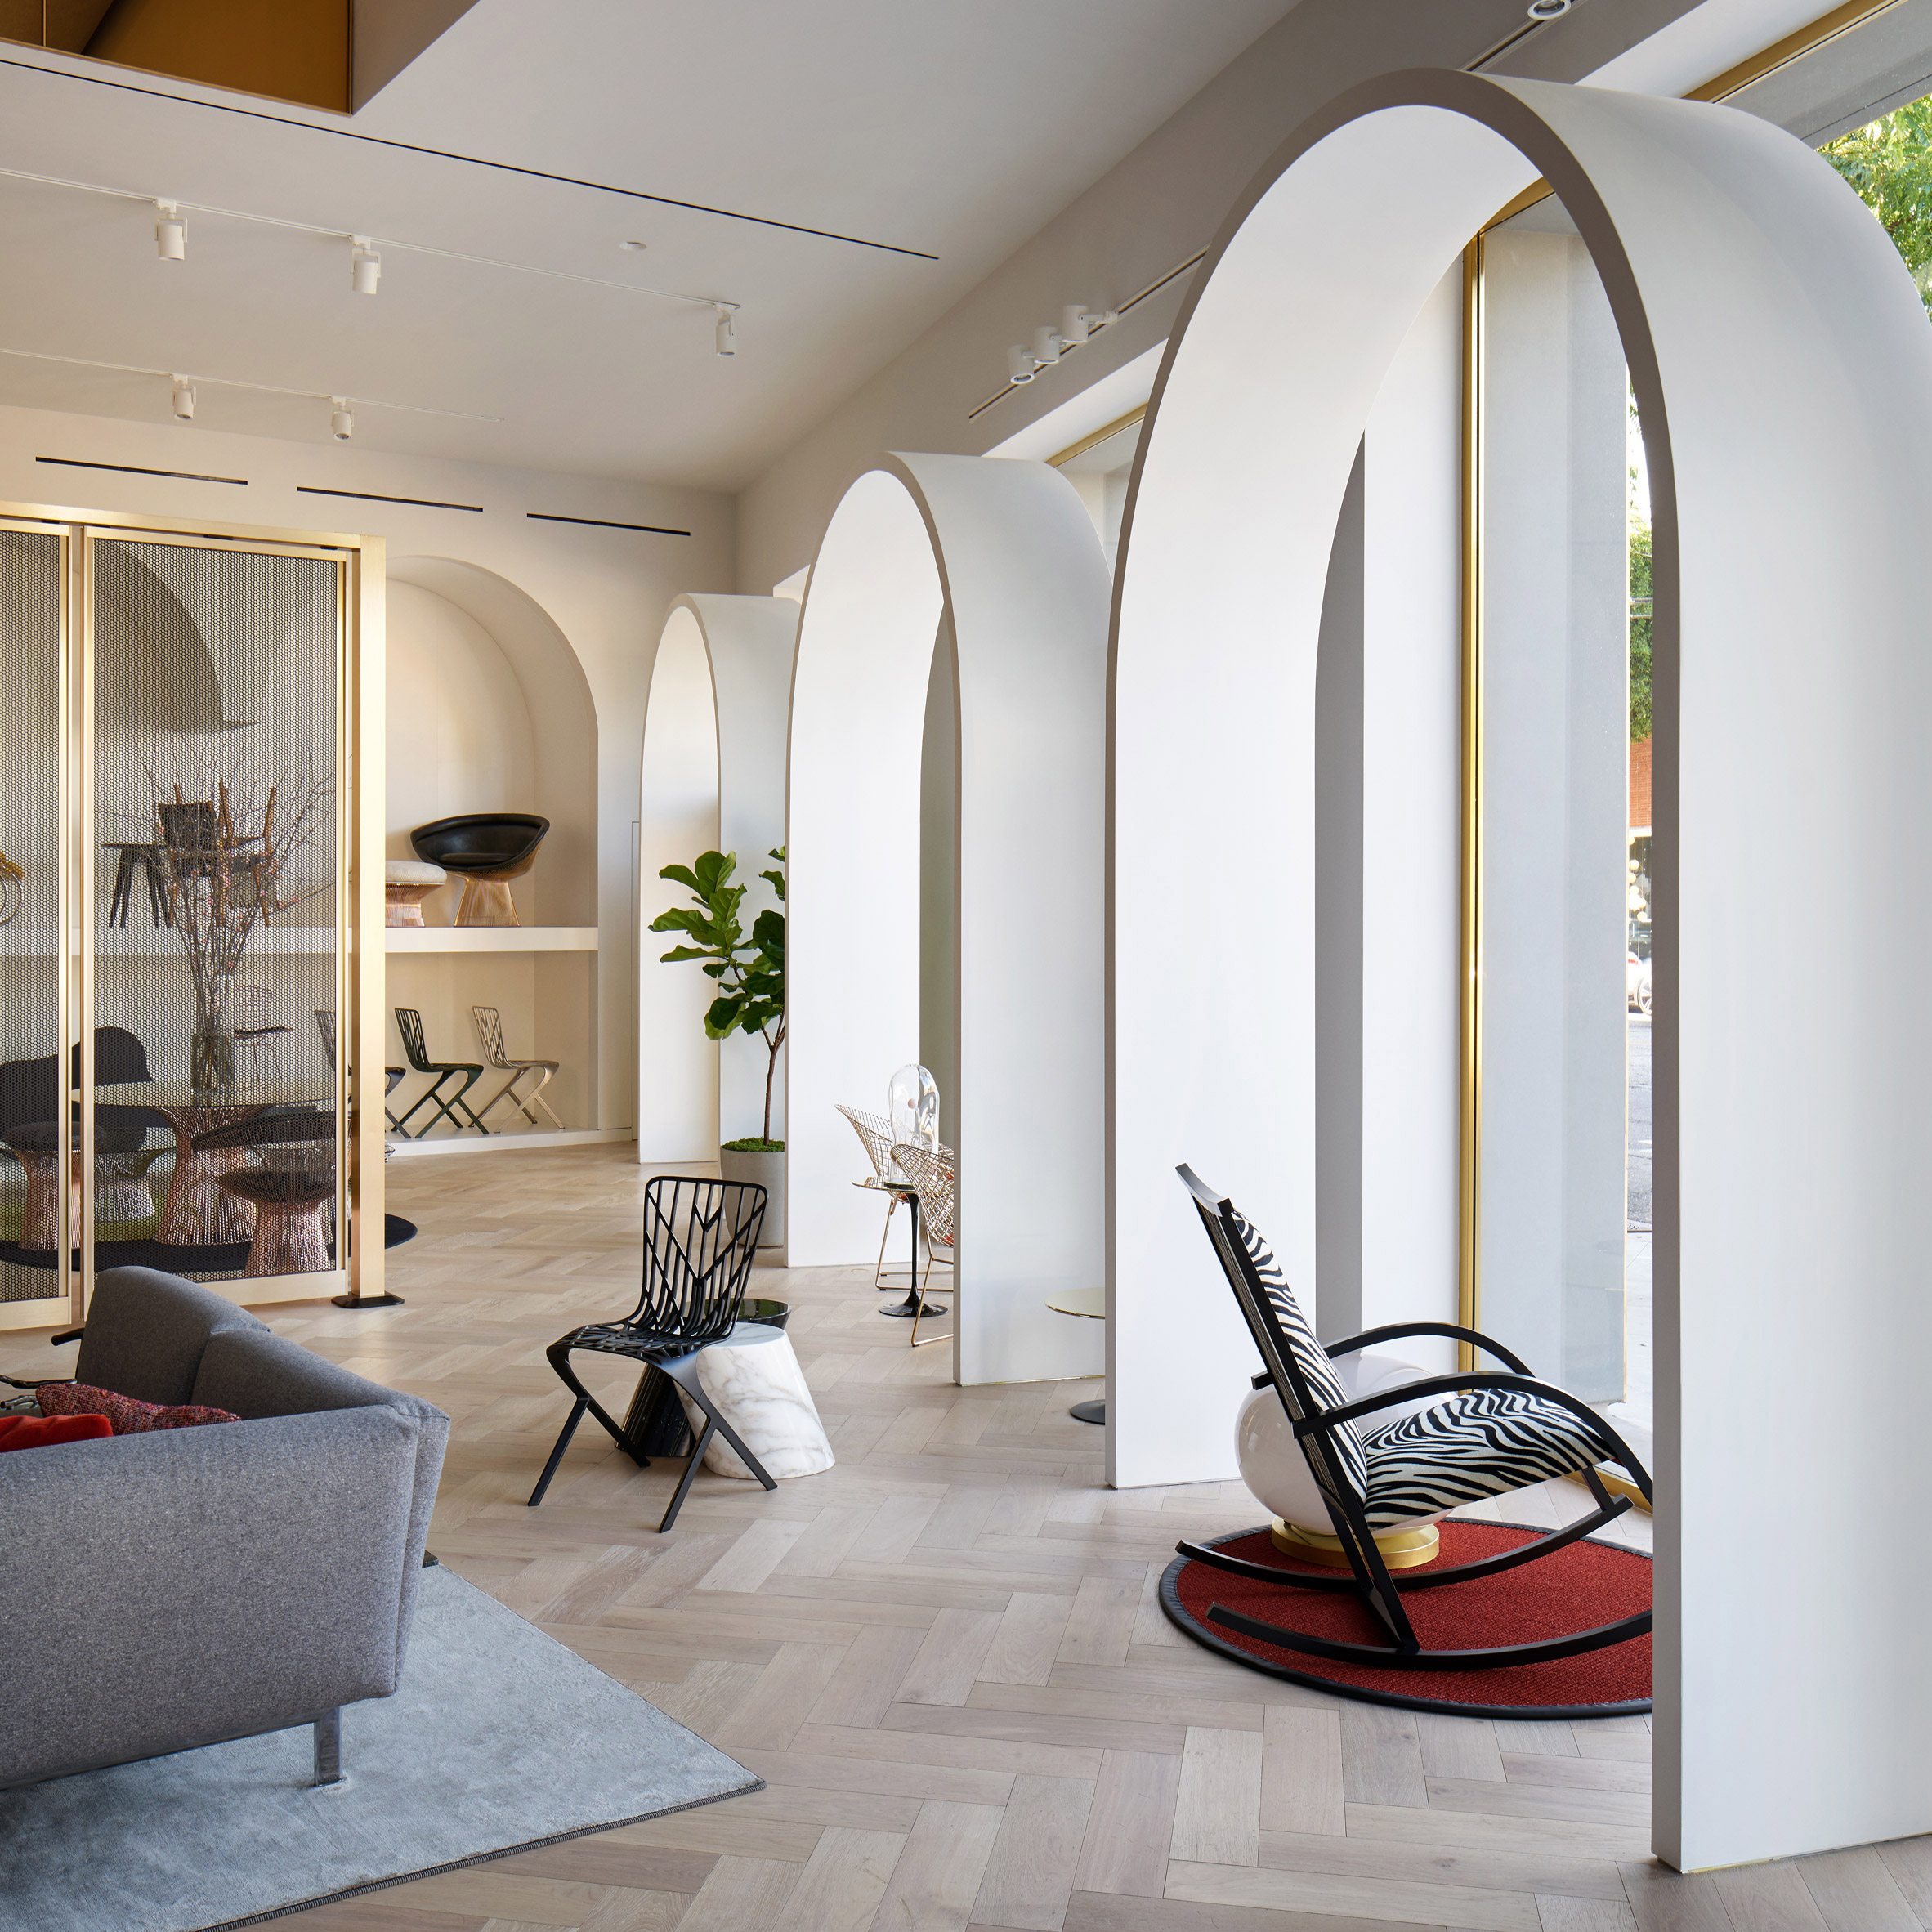 cool-shop-interior-design-18-home-knoll-interiors-johnston-marklee-los-angeles-usa-dezeen-2364-sq2.jpg